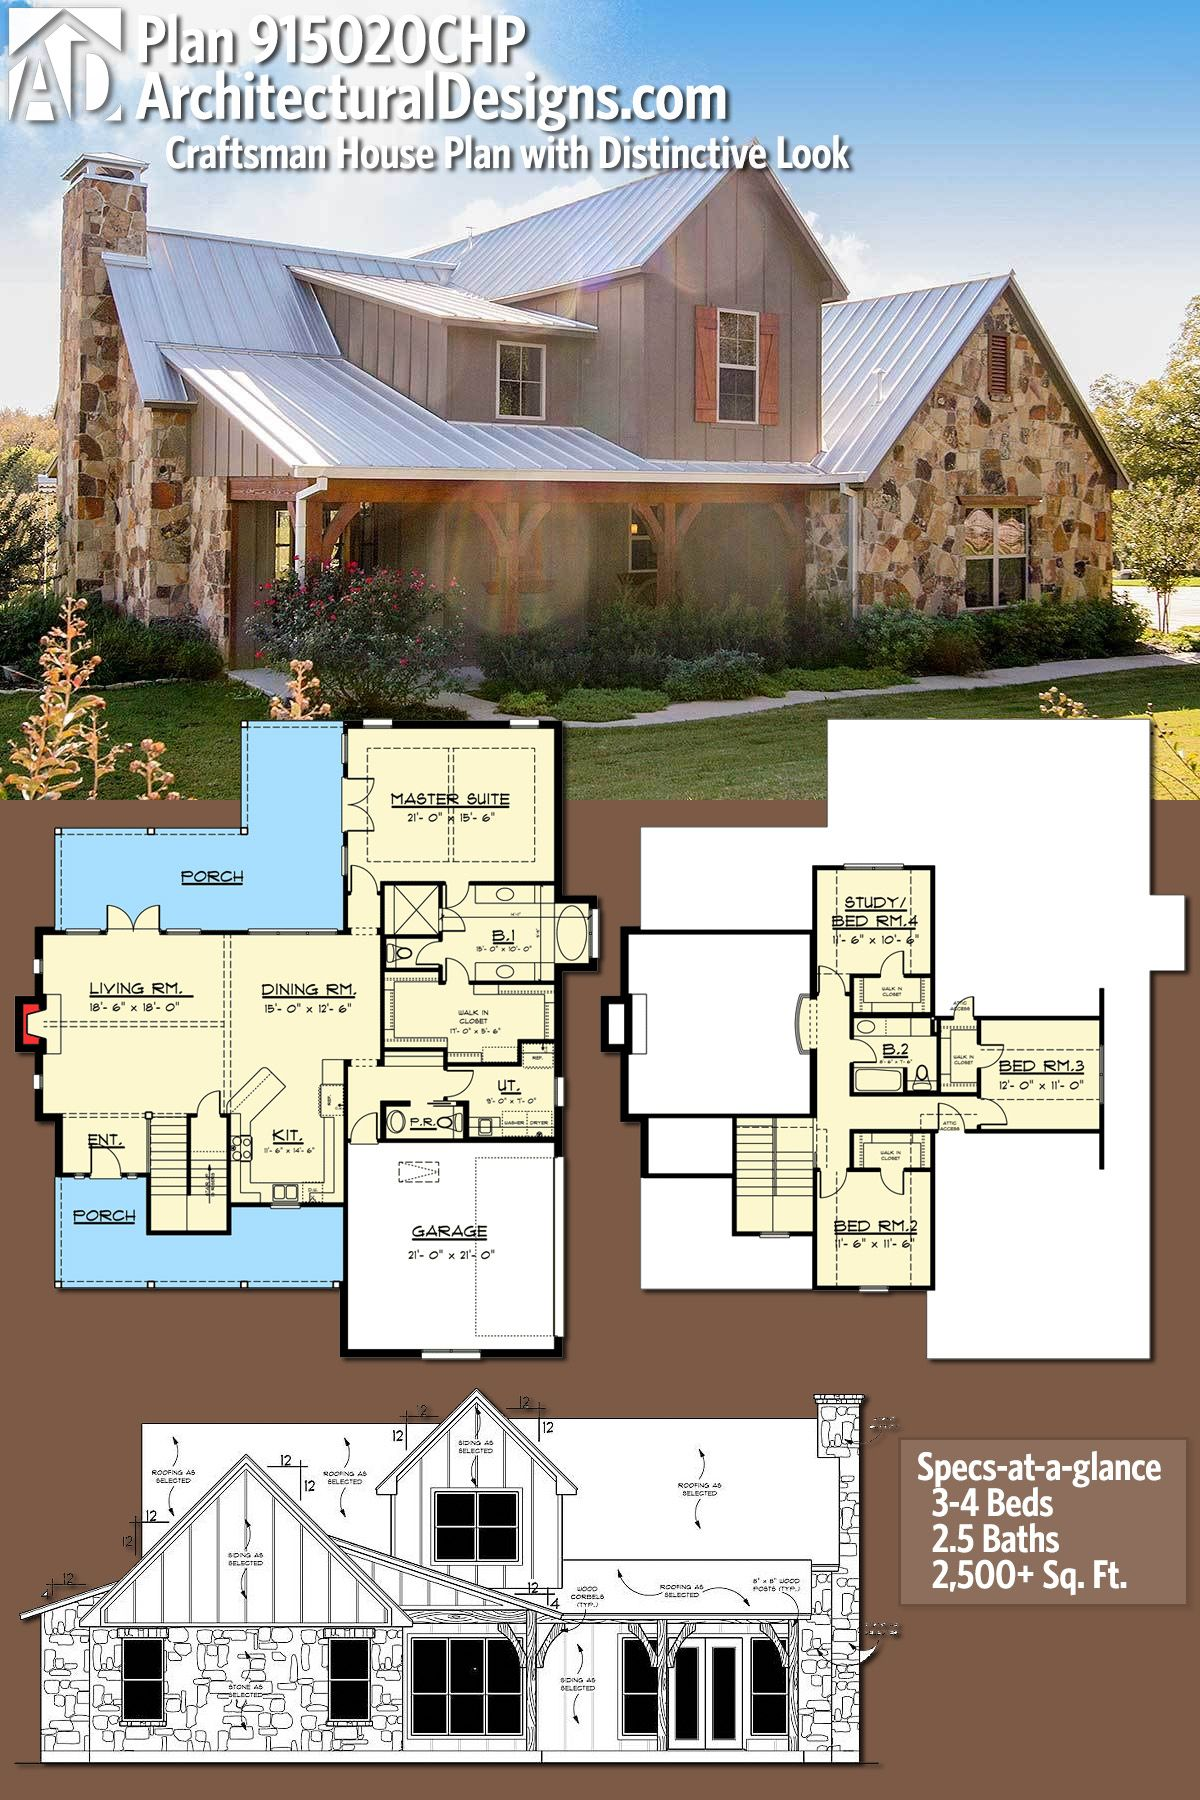 Plan 915020CHP Craftsman House Plan with Distinctive